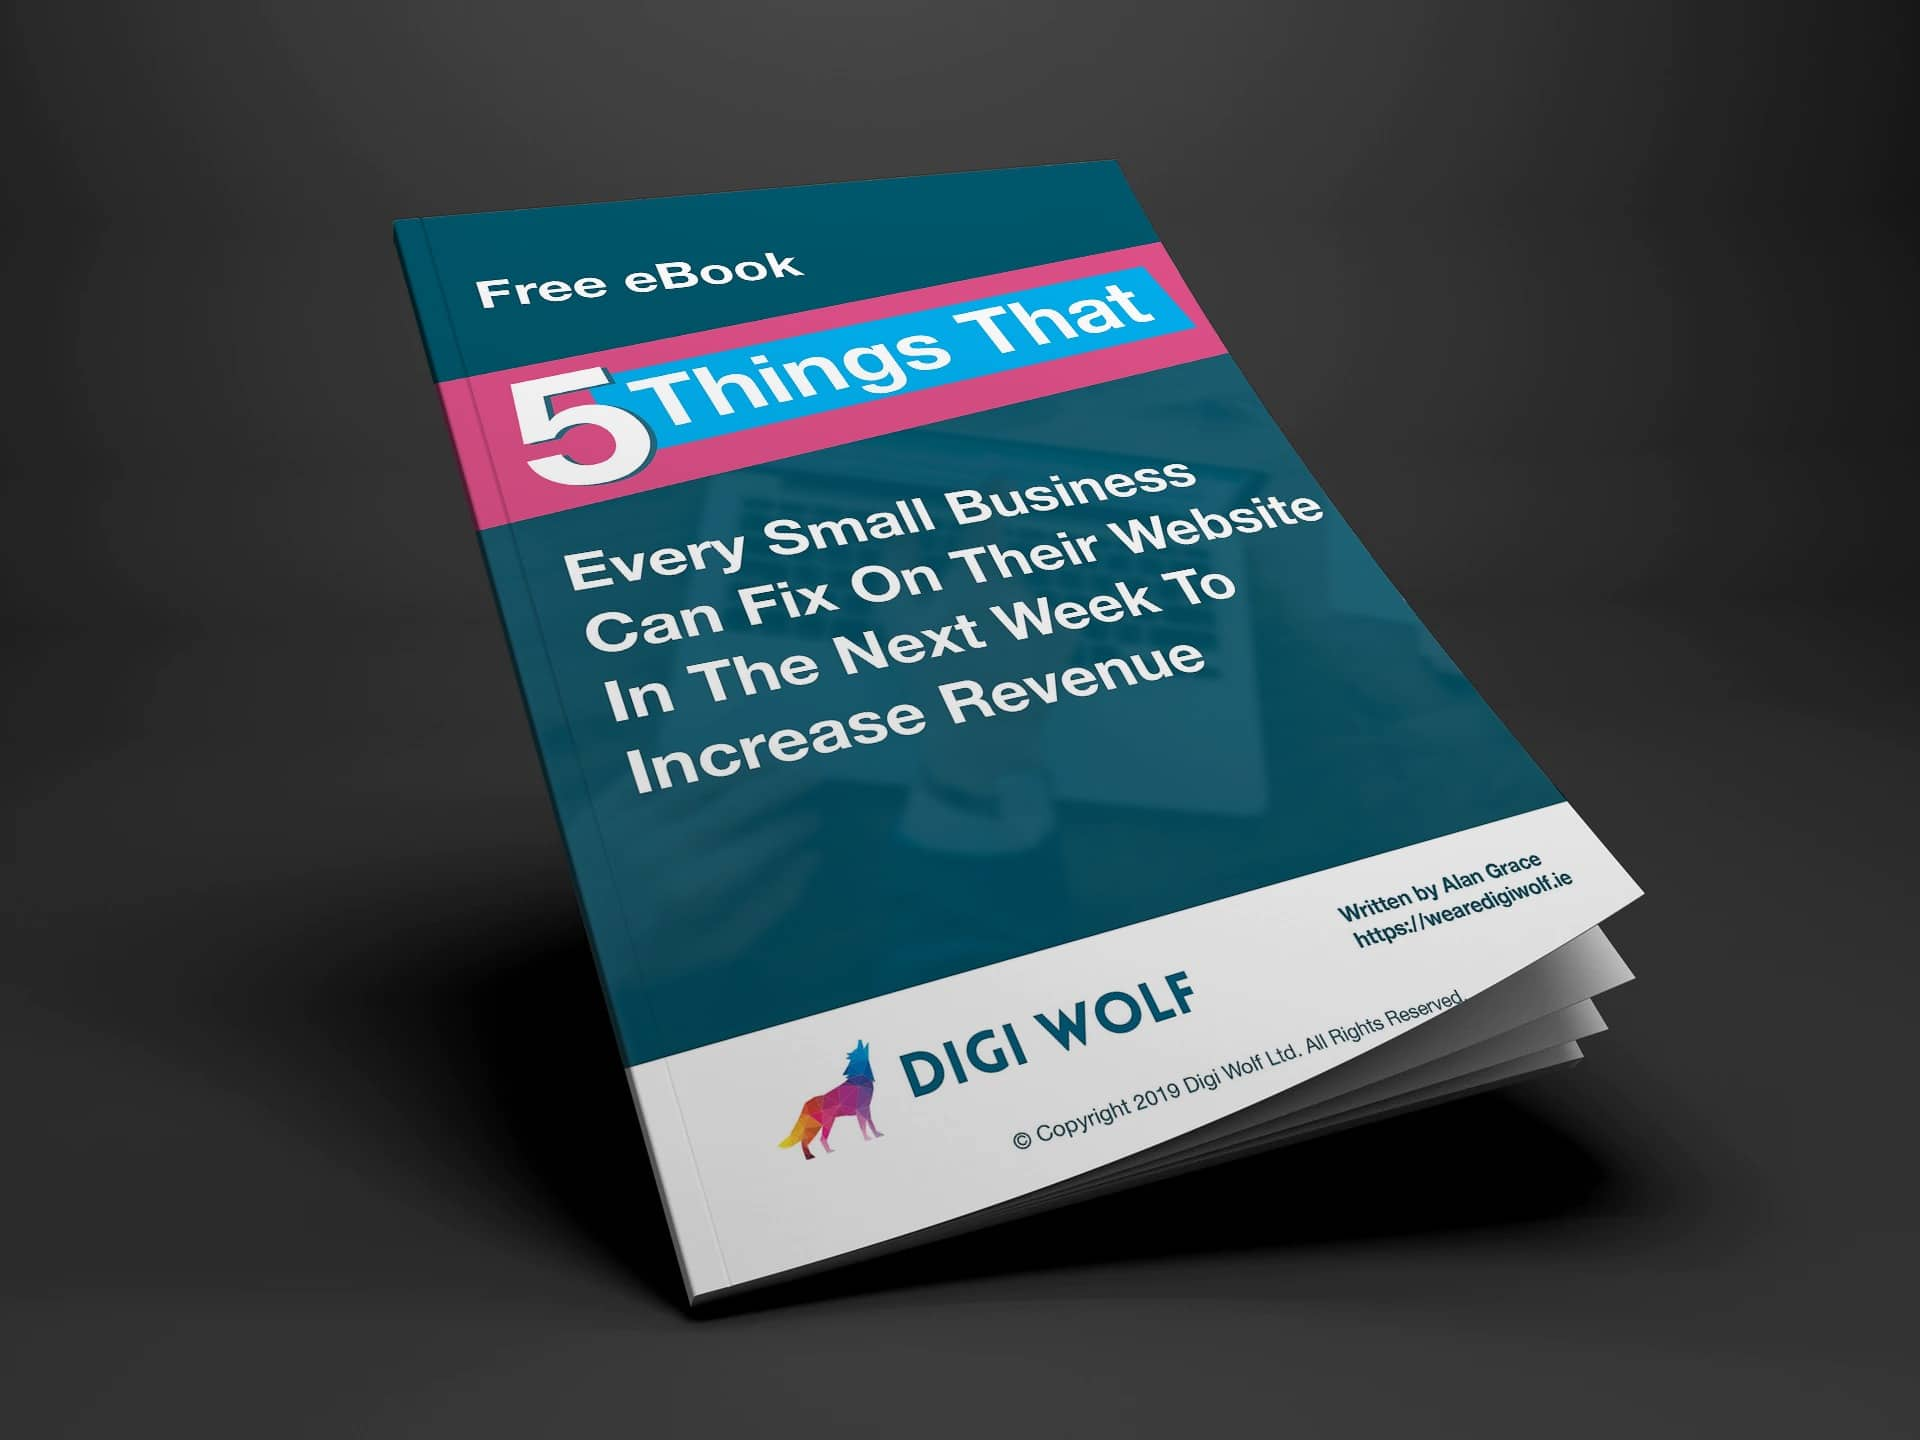 5 Things To Increase Revenue